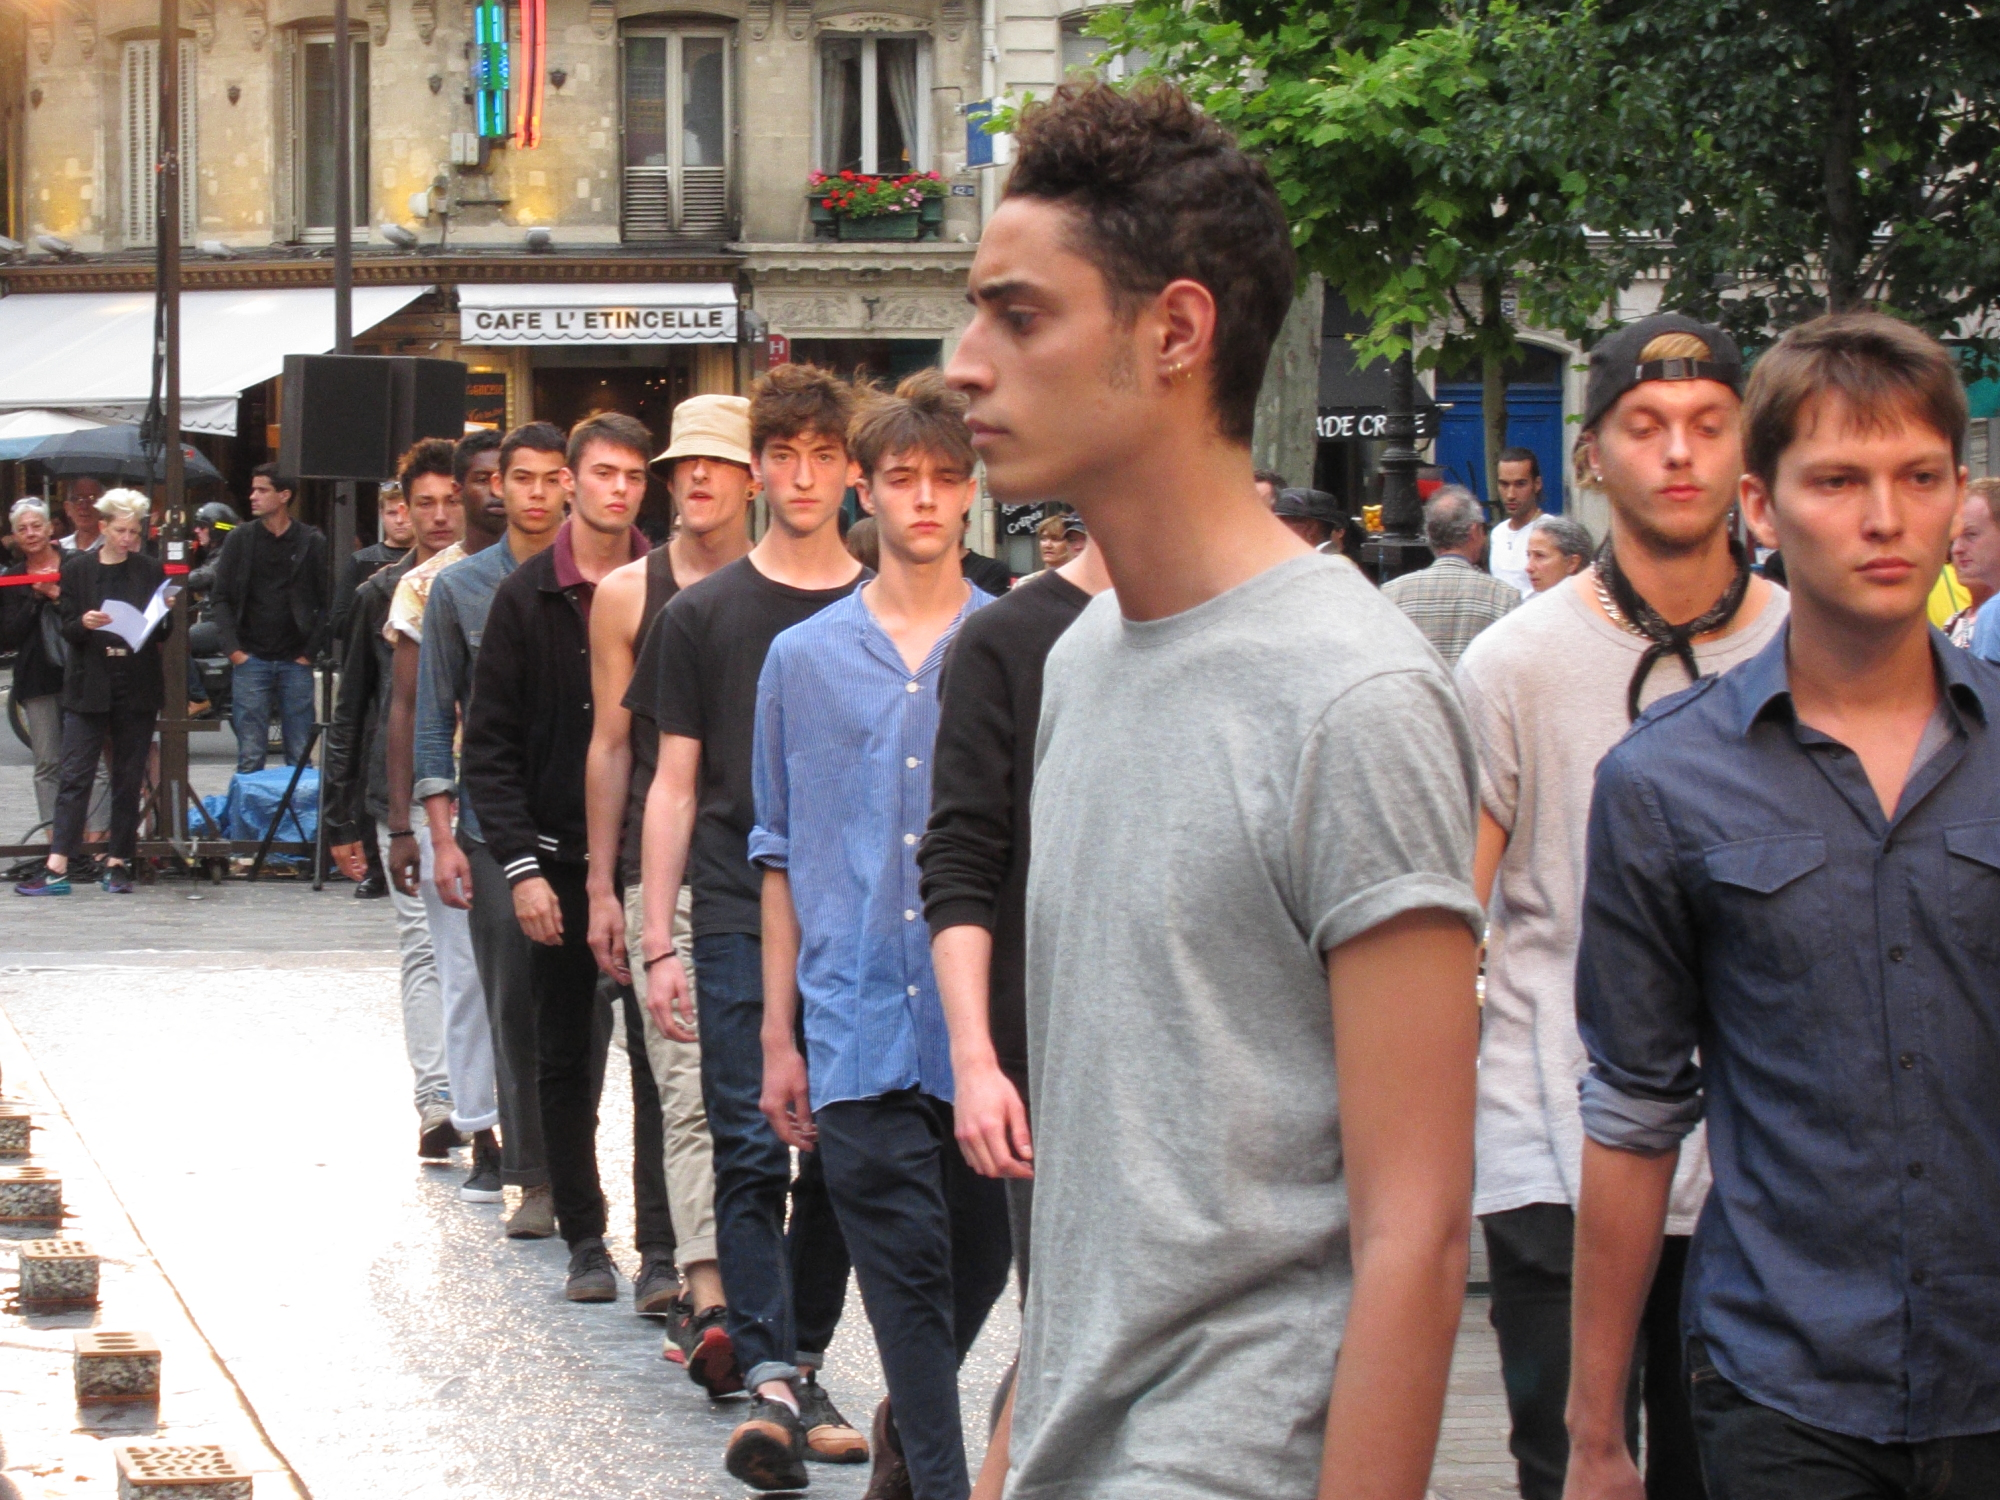 A parade of models just down the street from my apartment.